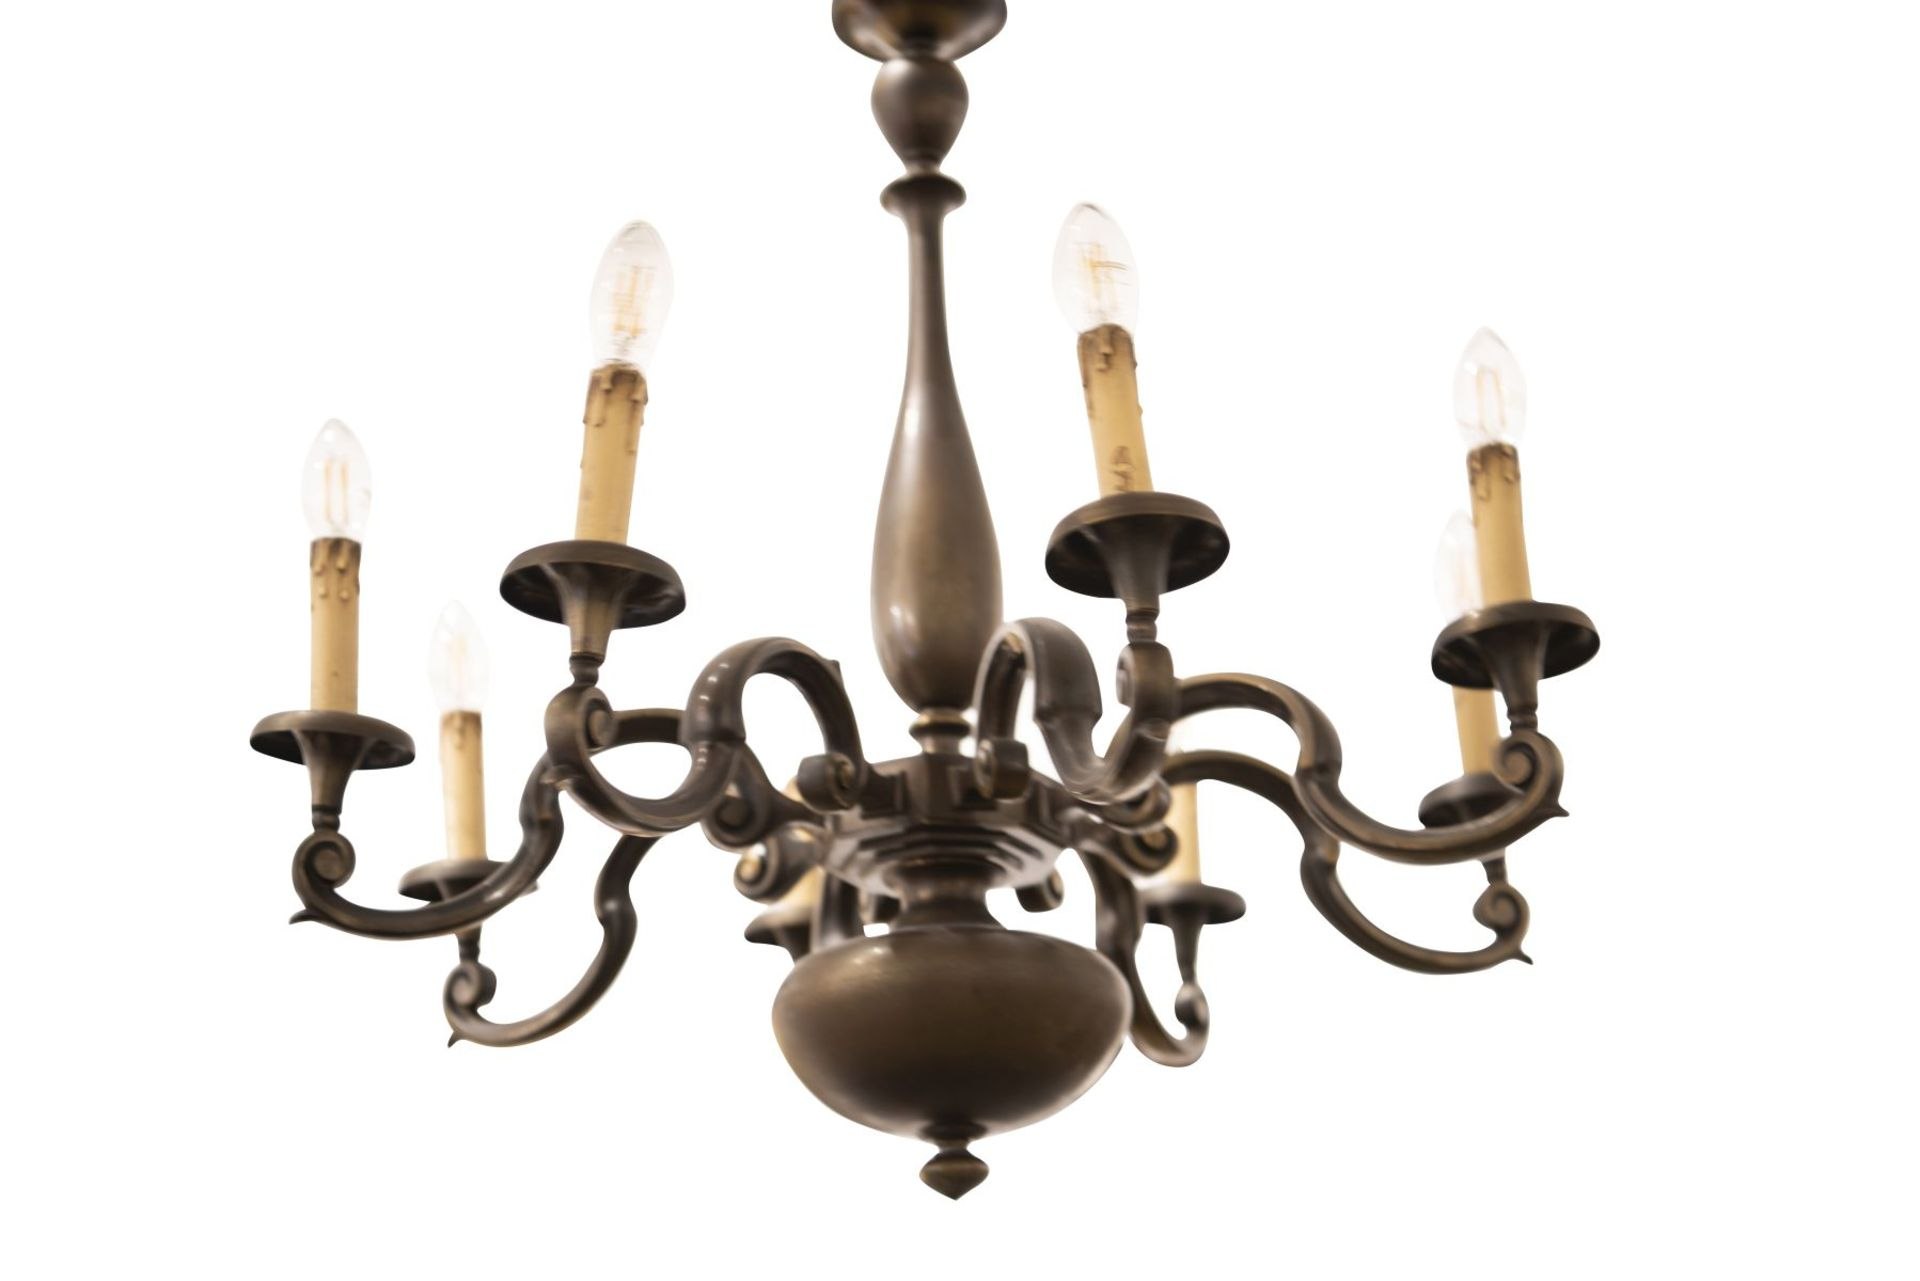 Salon chandelier and two wall appliques - Image 4 of 10